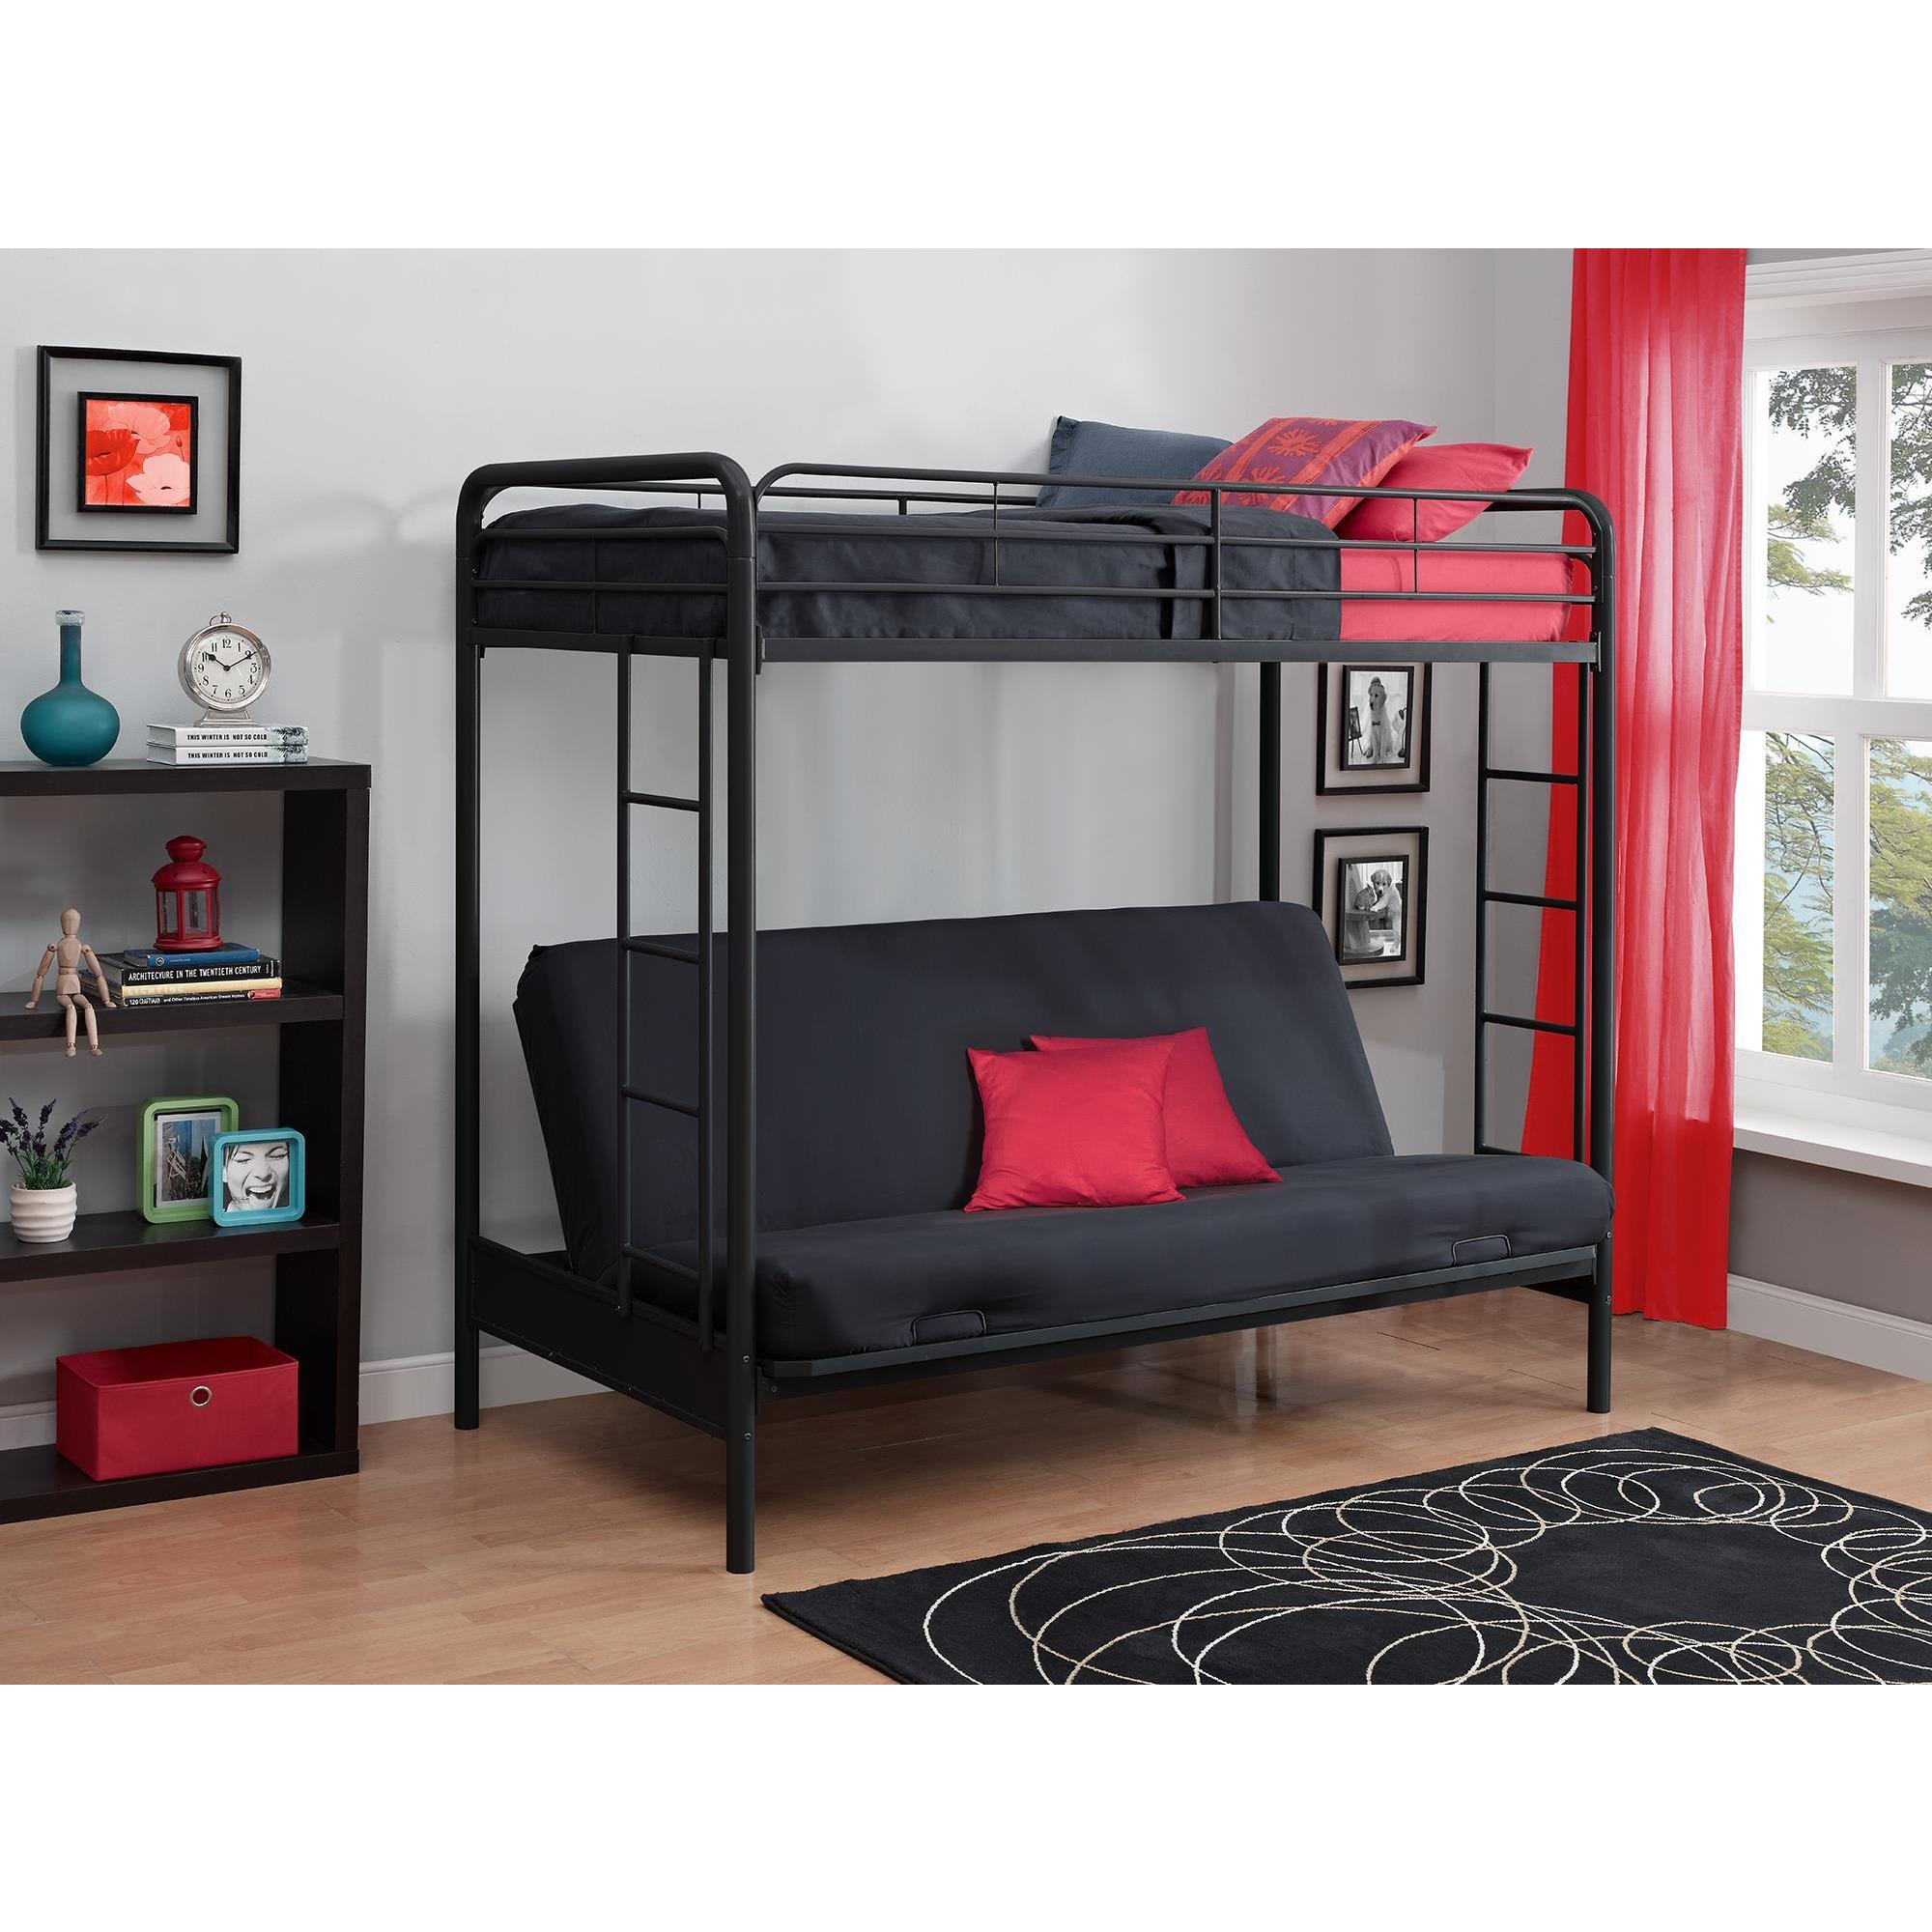 Dhp Twin Over Futon Black Metal Bunk Bed Free Shipping Today Com 9459648